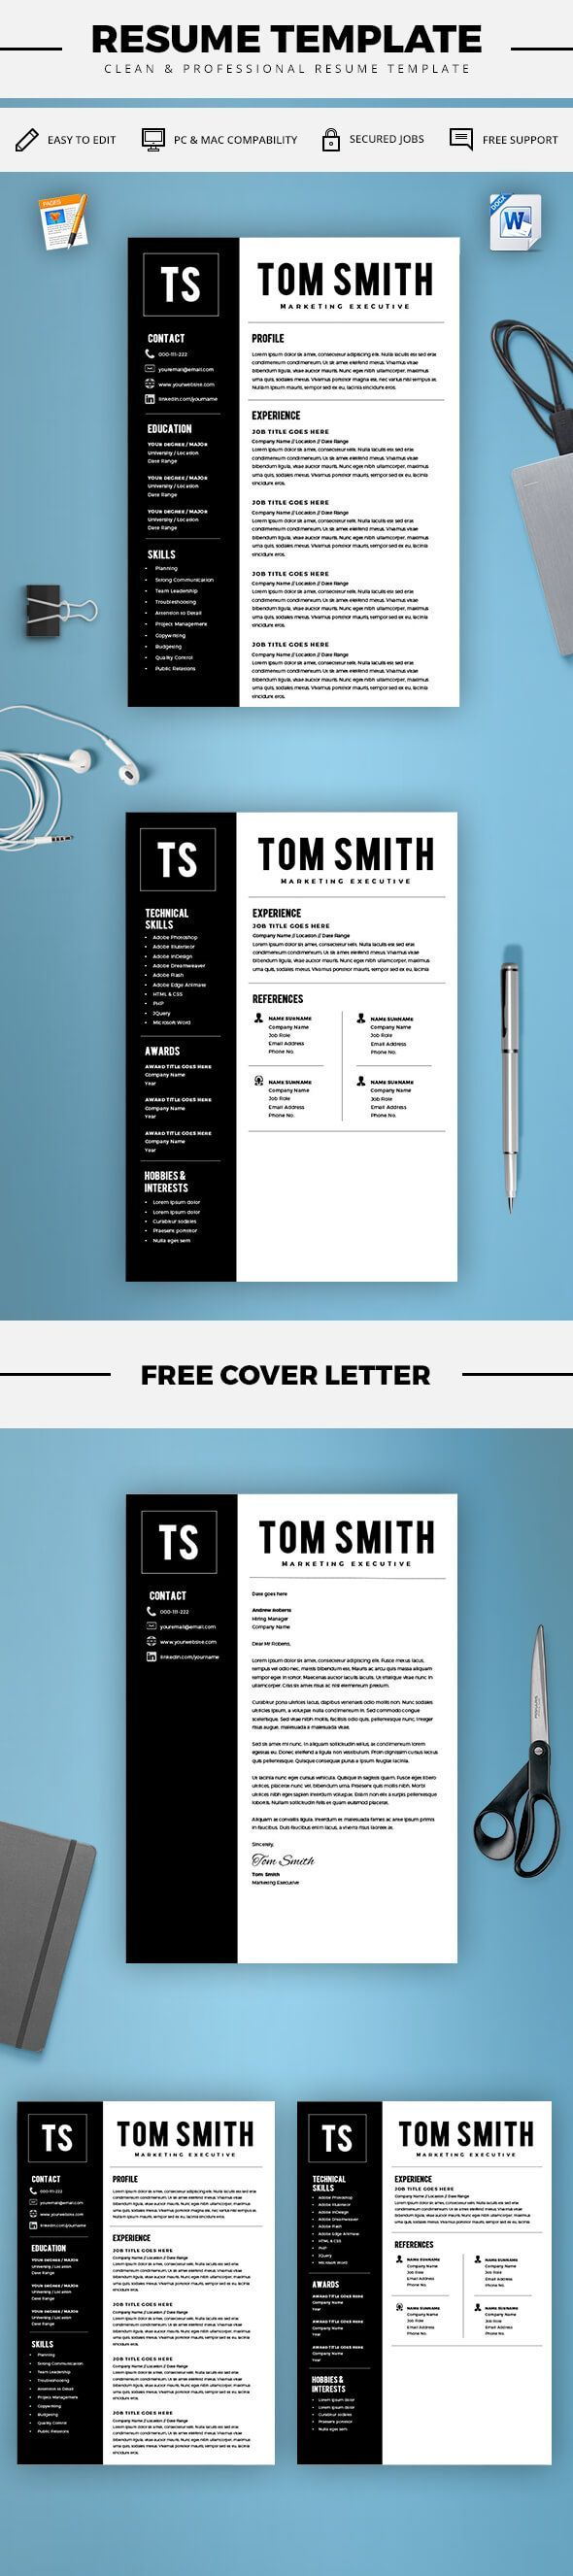 best cover letter builder ideas pinterest resume two page template ...